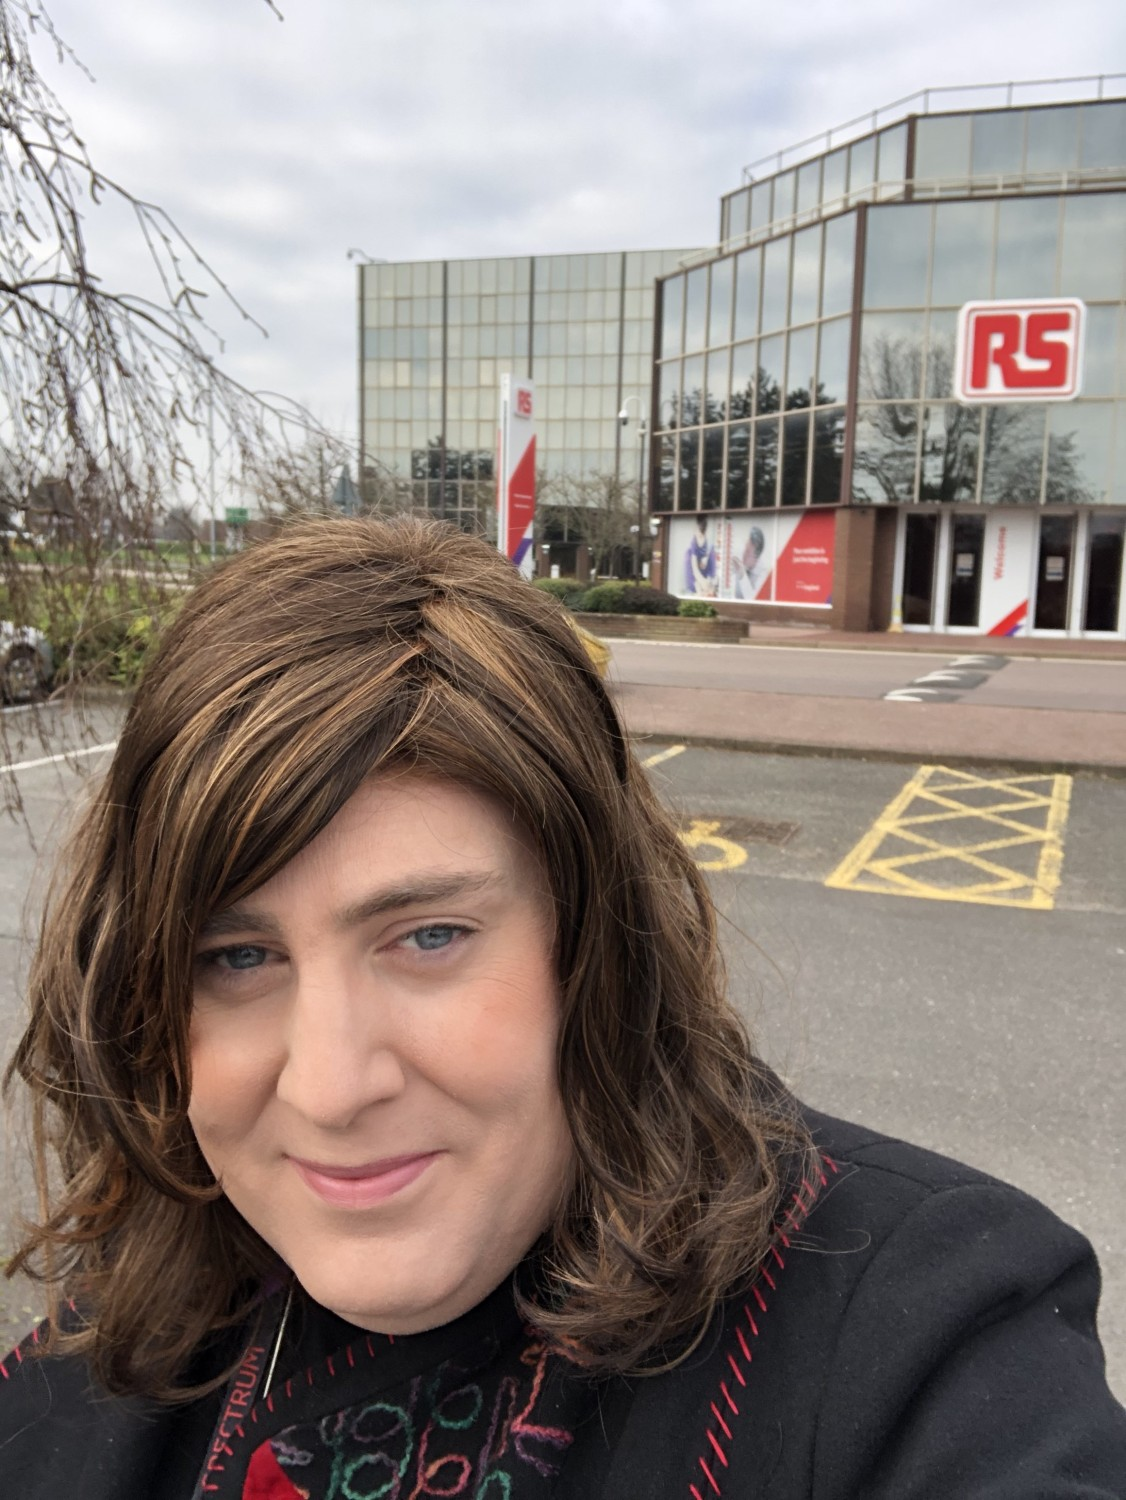 Emily outside the RS office